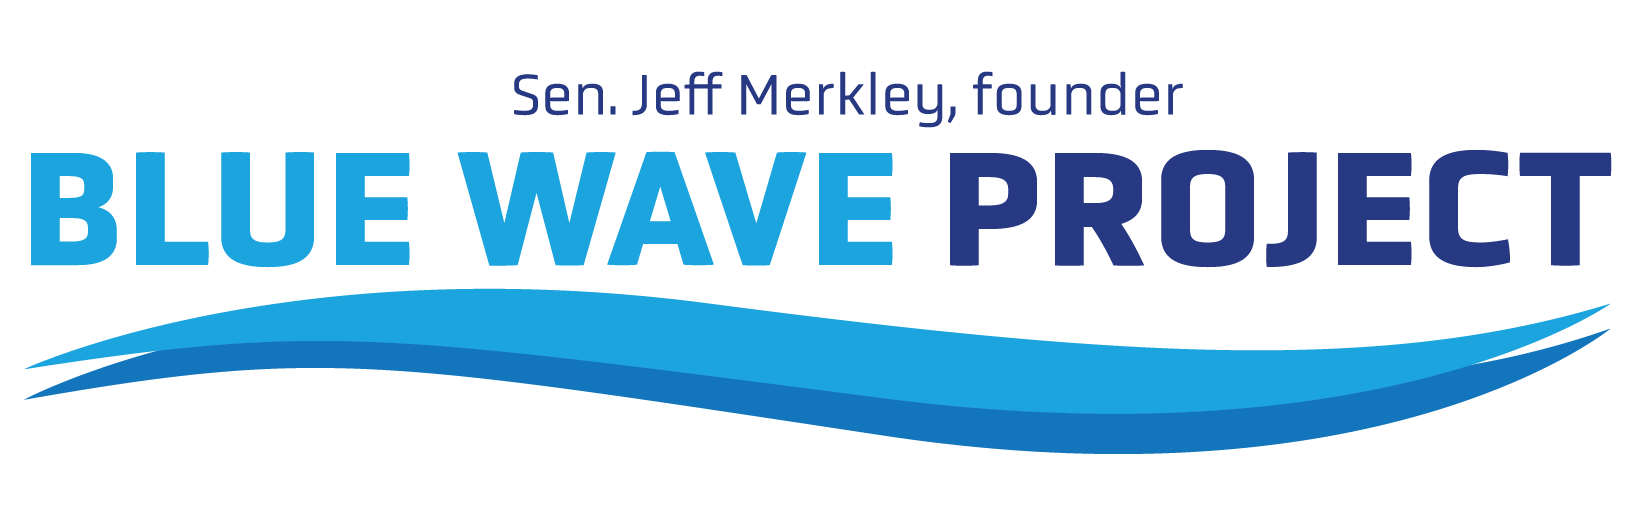 Opportunity & Renewal PAC - Blue Wave Project